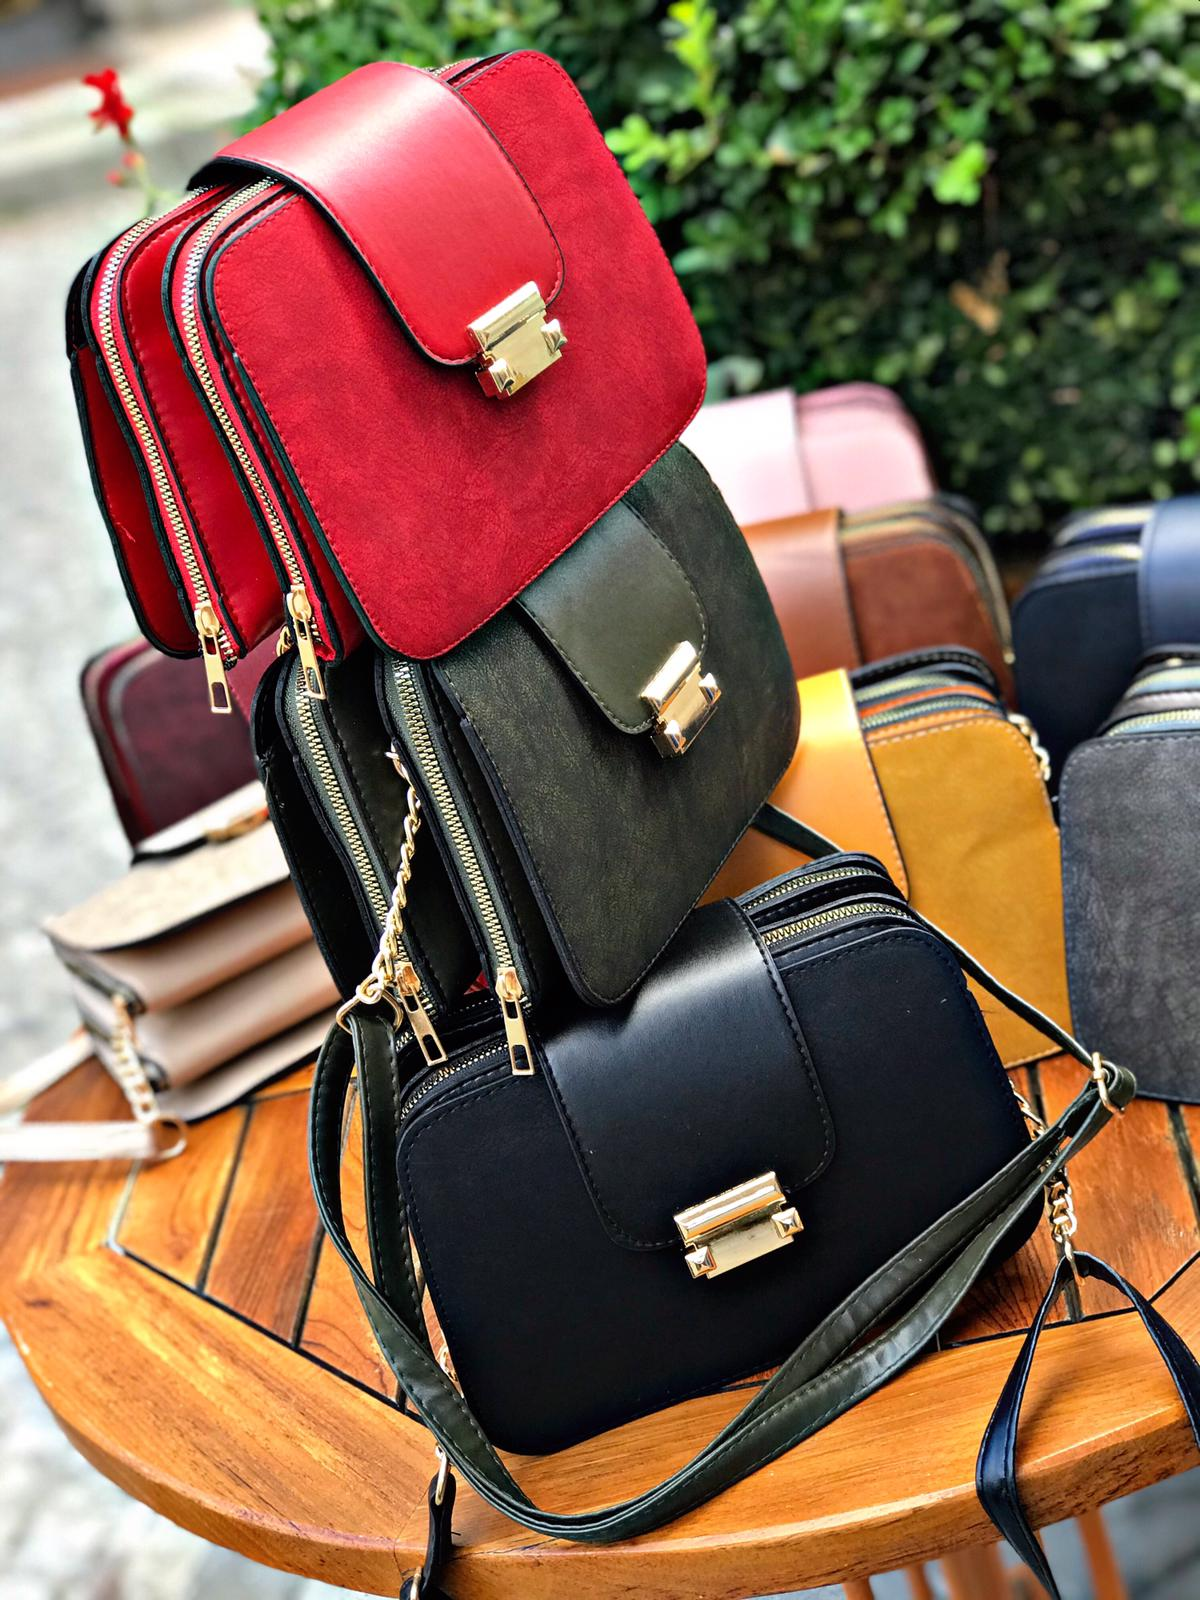 Can Bags